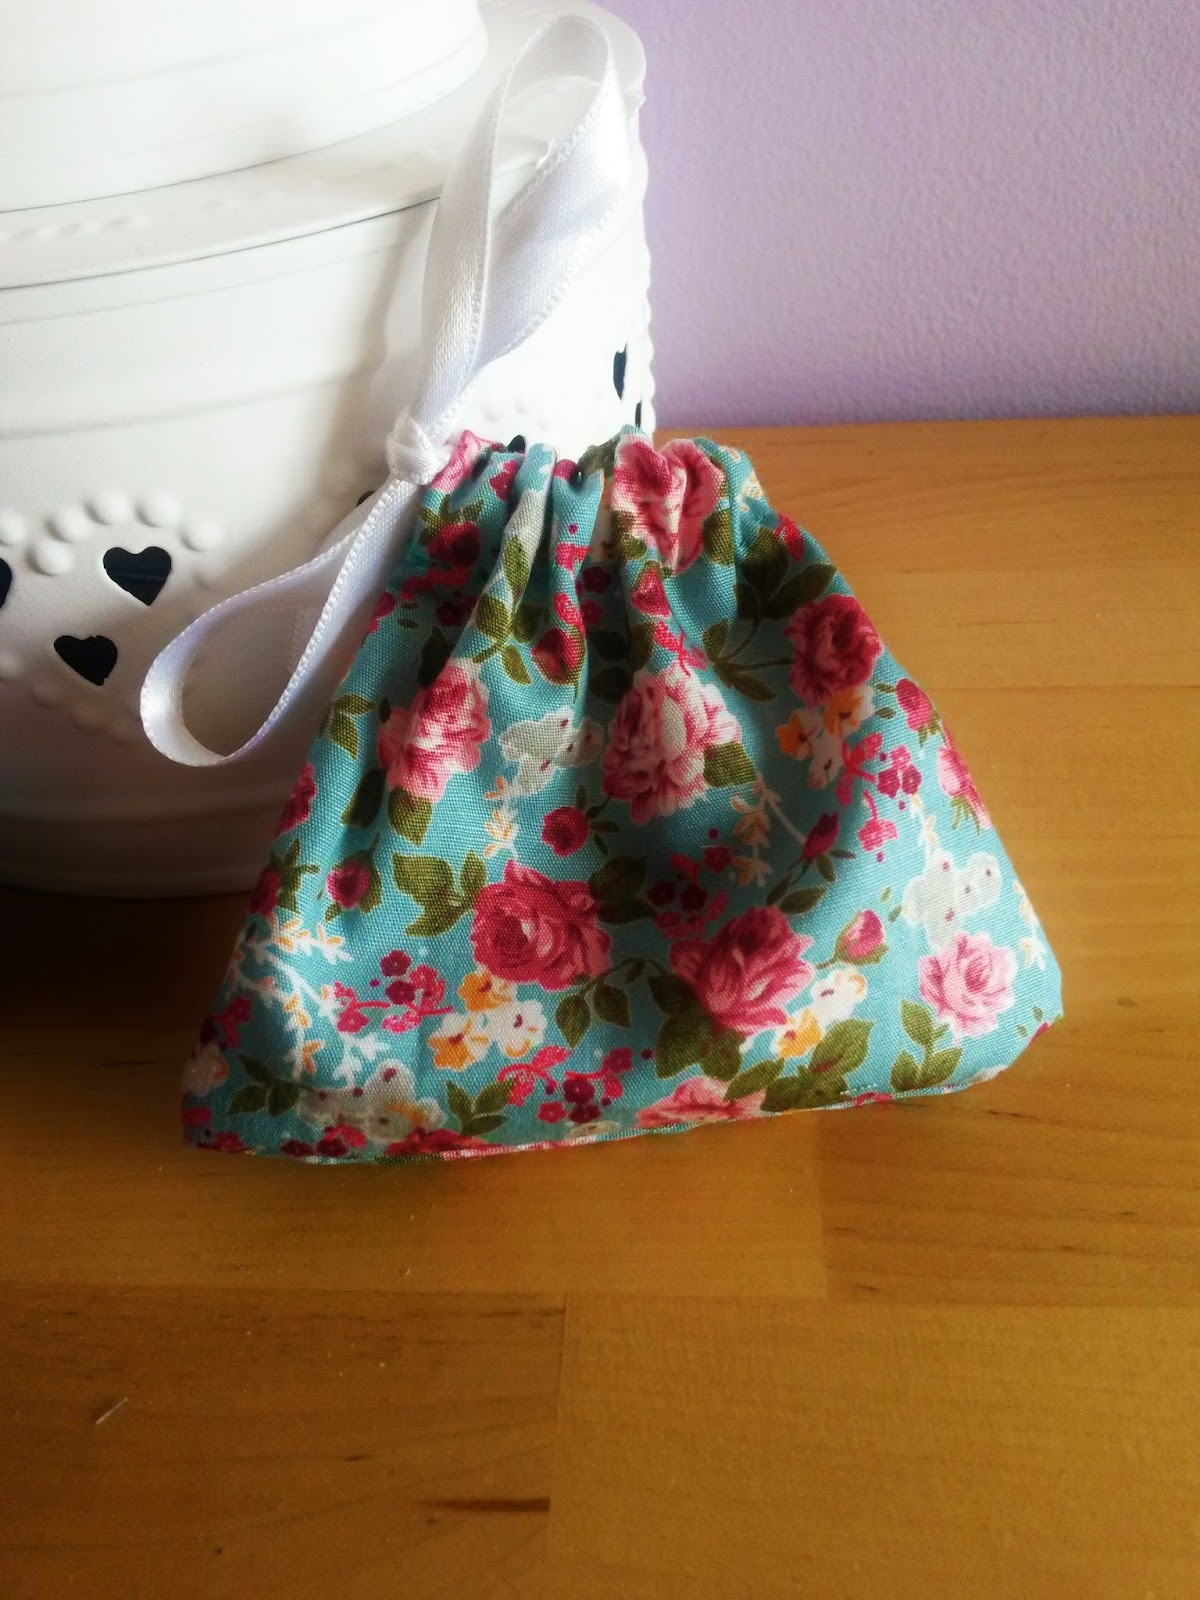 Homemade lavender scent bag